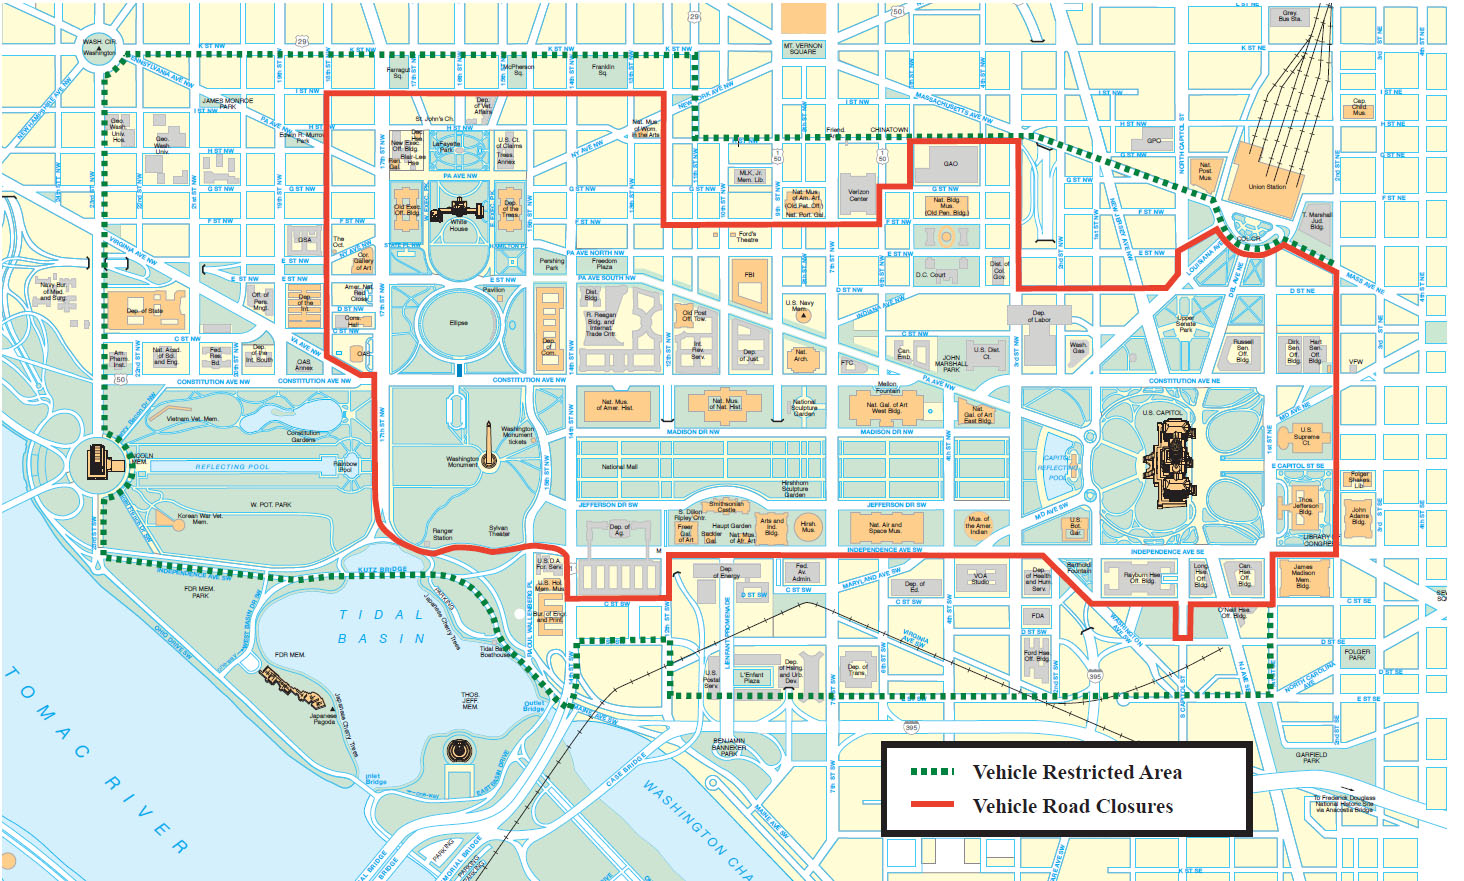 A map released by the Secret Service detailing streets that will be closed or restricted to vehicles during the 2017 inauguration. (U.S. Secret Service)